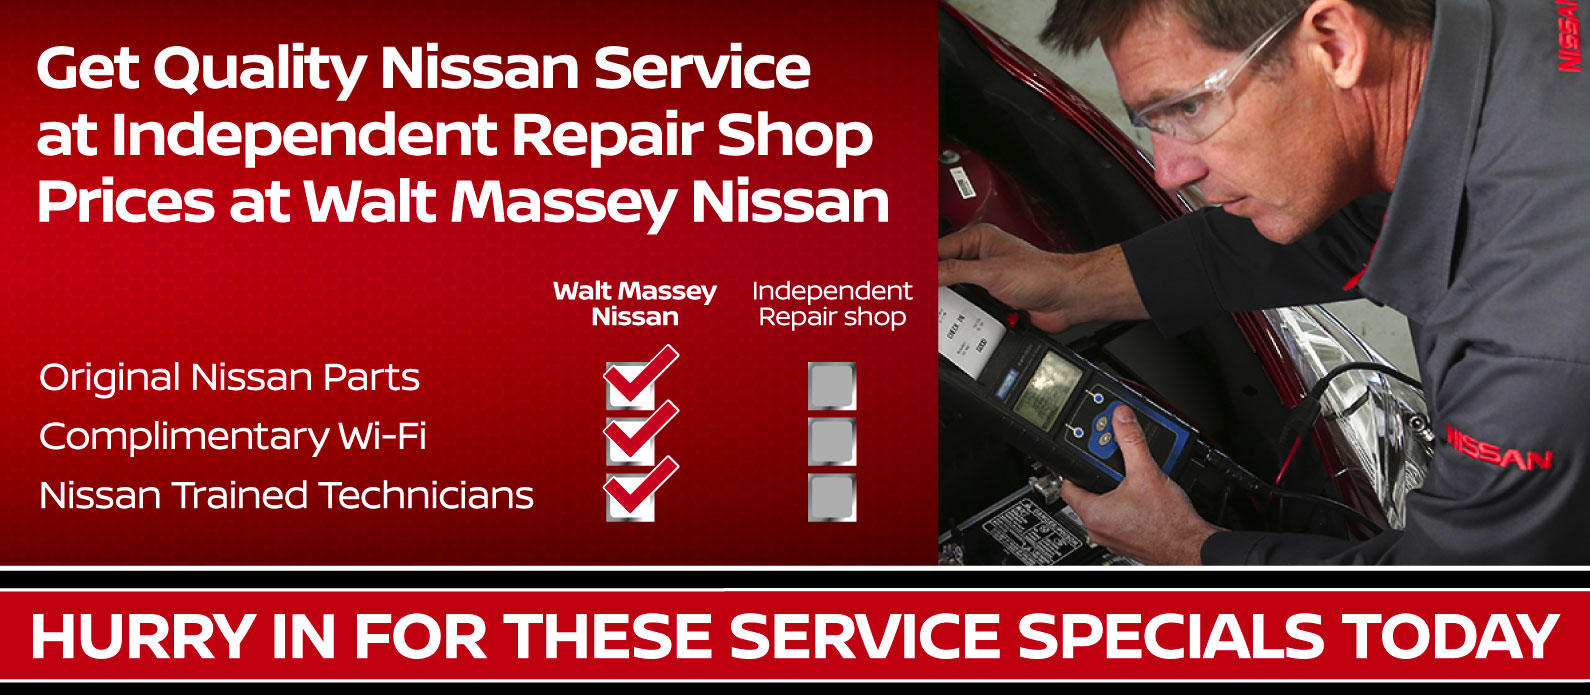 Get quality Nissan Service at Independent Repair Shop Prices at Walt Massey Nissan